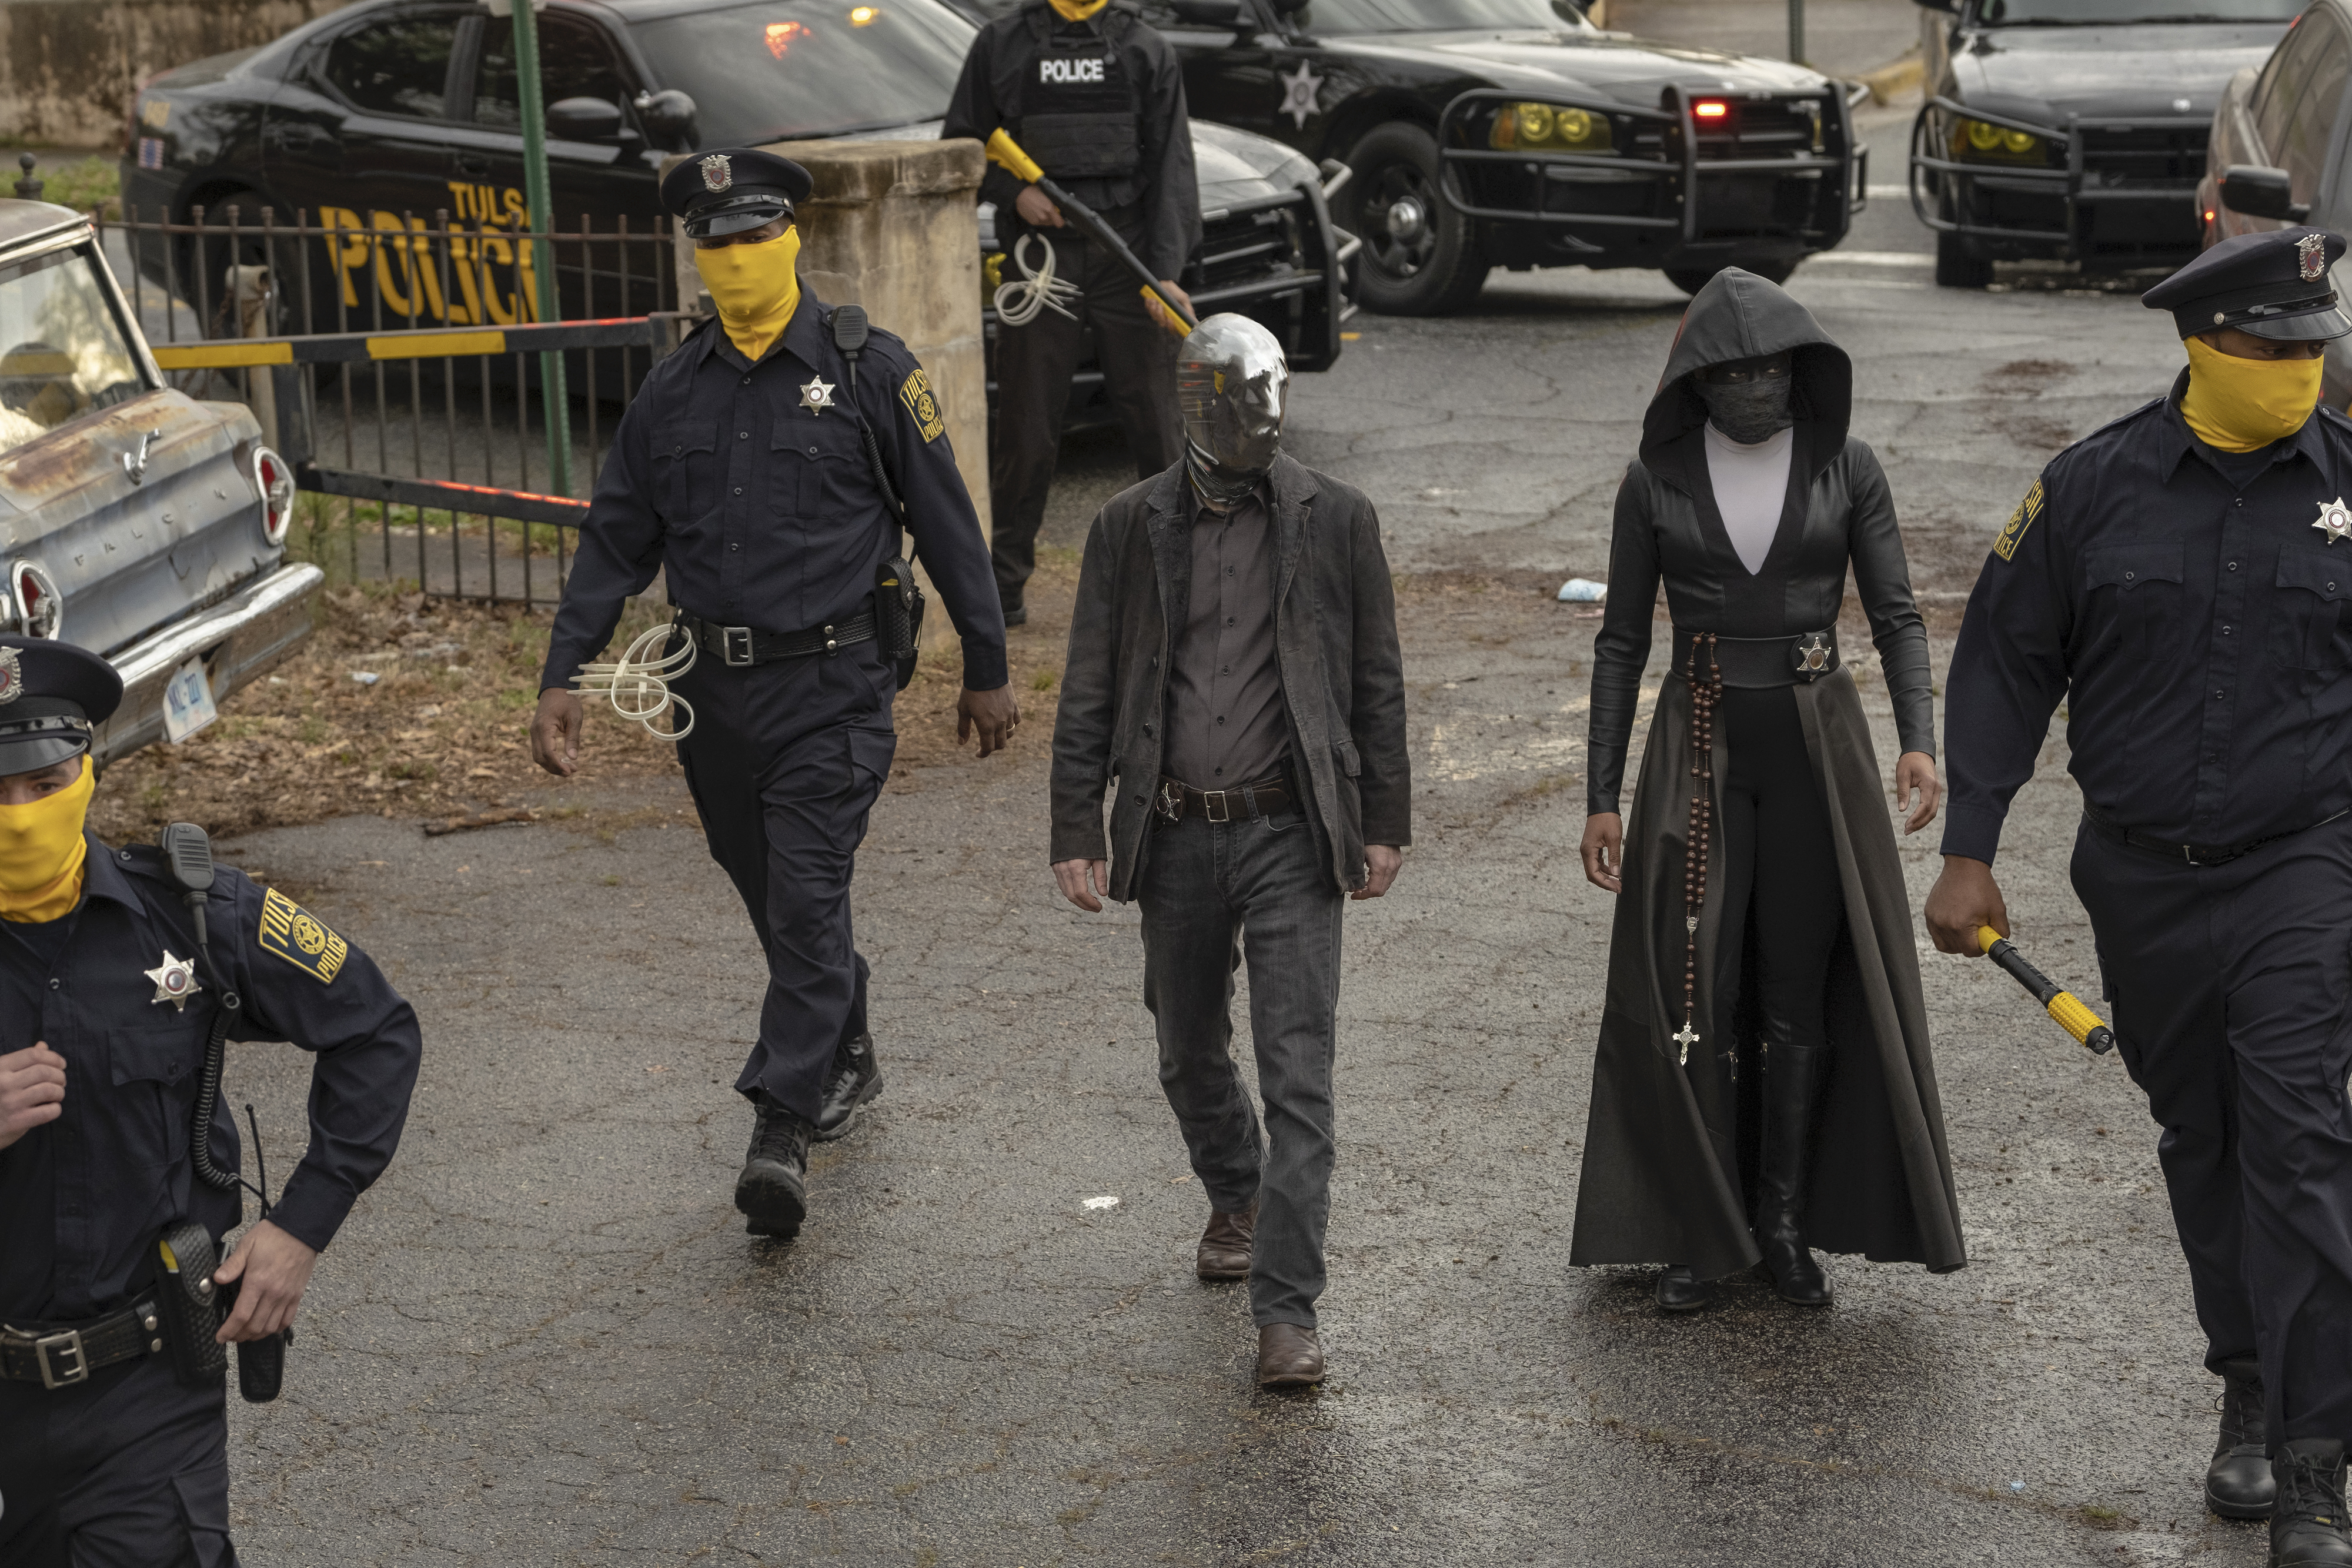 Vigilantes Looking Glass (Tim Blake Nelson) and Sister Night (Regina King) walk into a crime scene flanked by masked police officers.